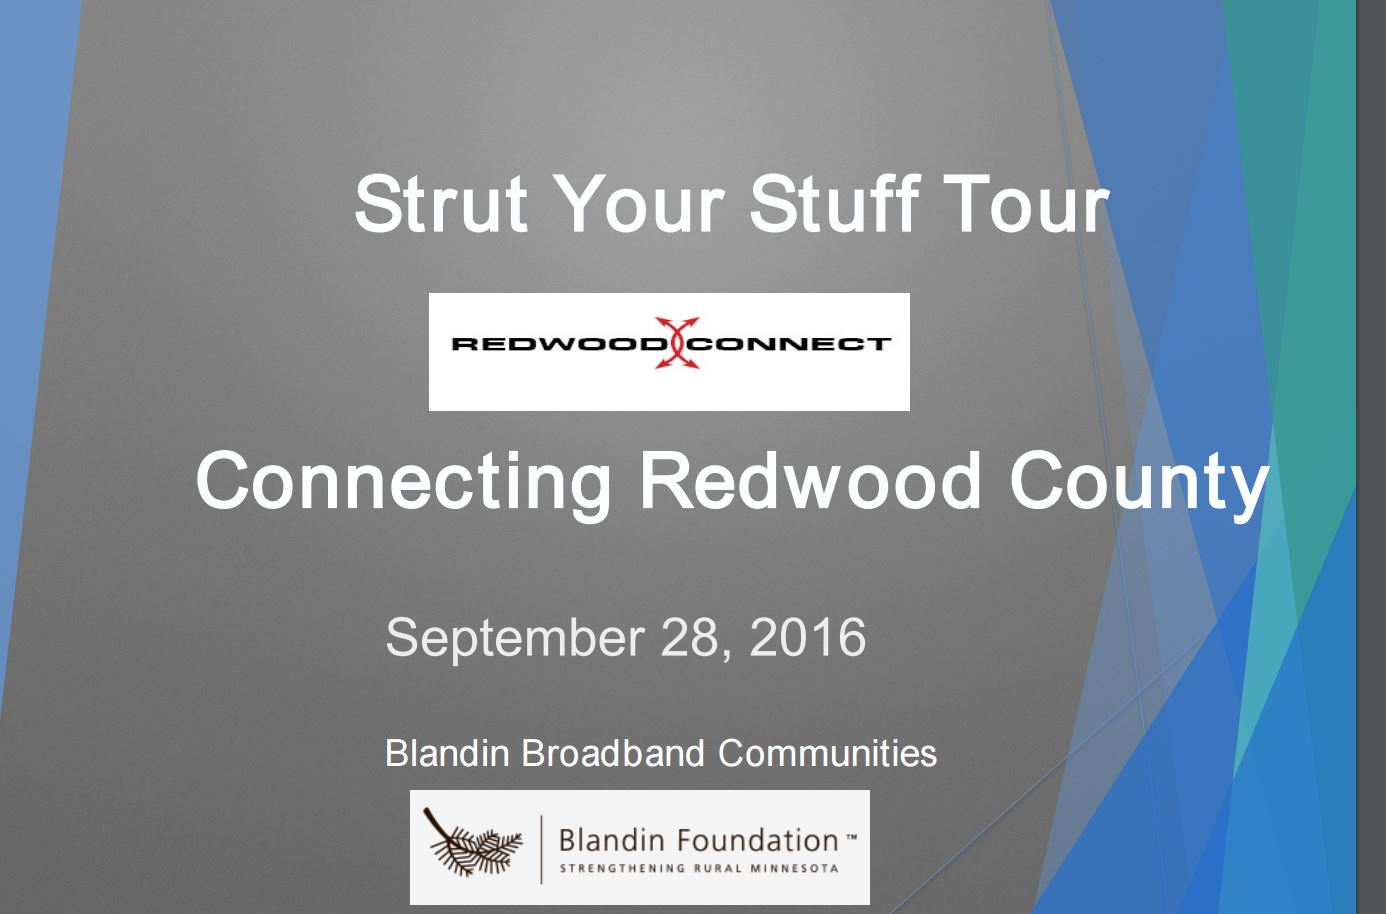 Thumbnail Image For Strut Your Stuff ppt - Blandin Broadband Communities Grant presentattion - 9/28/16 - Click Here To See